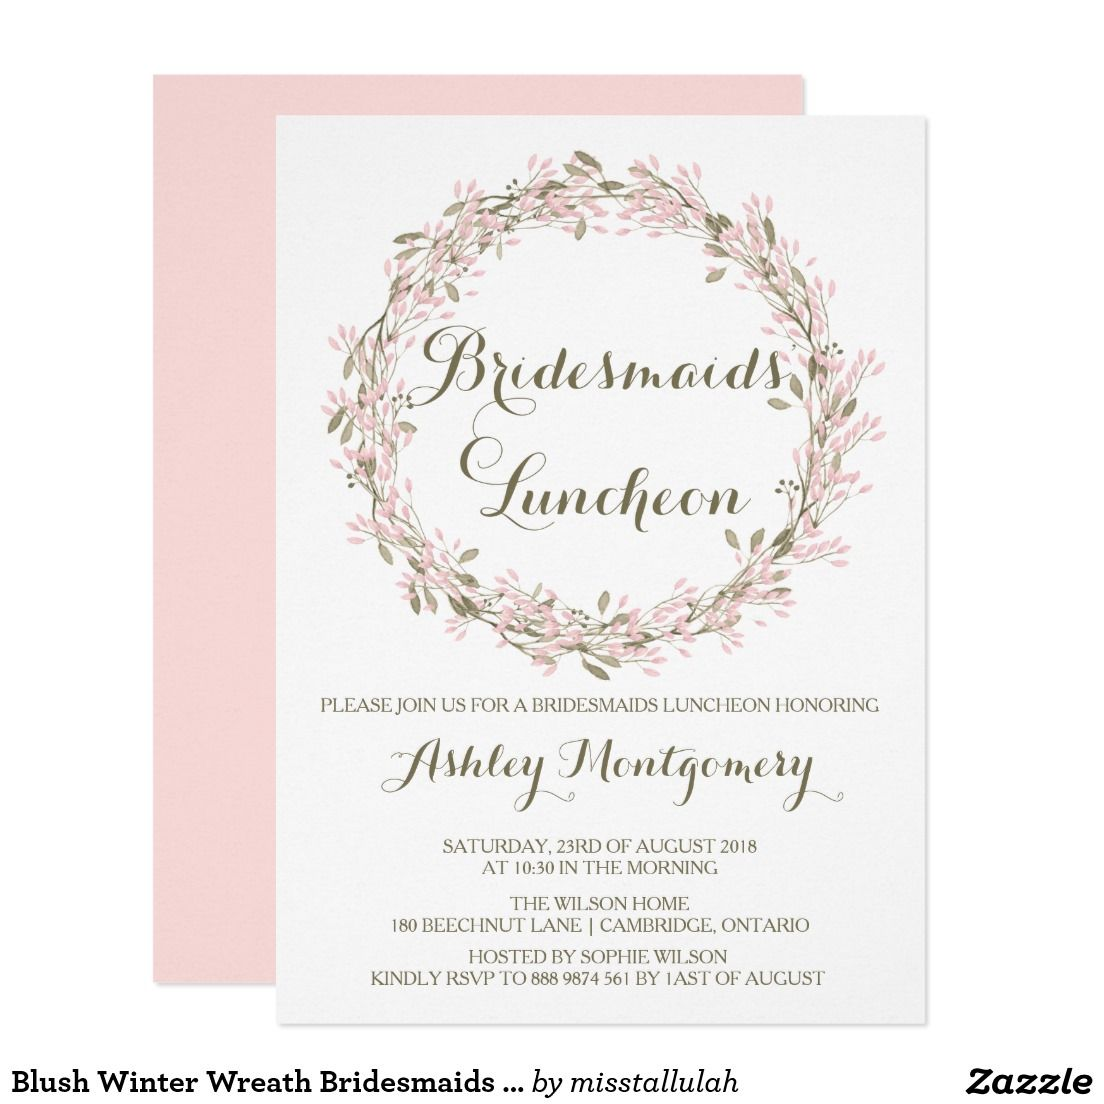 bridesmaids lunch wedding bridal shower chic pink blush wreath floral flowers invites announcements invitations wedding bridesmaids lunch